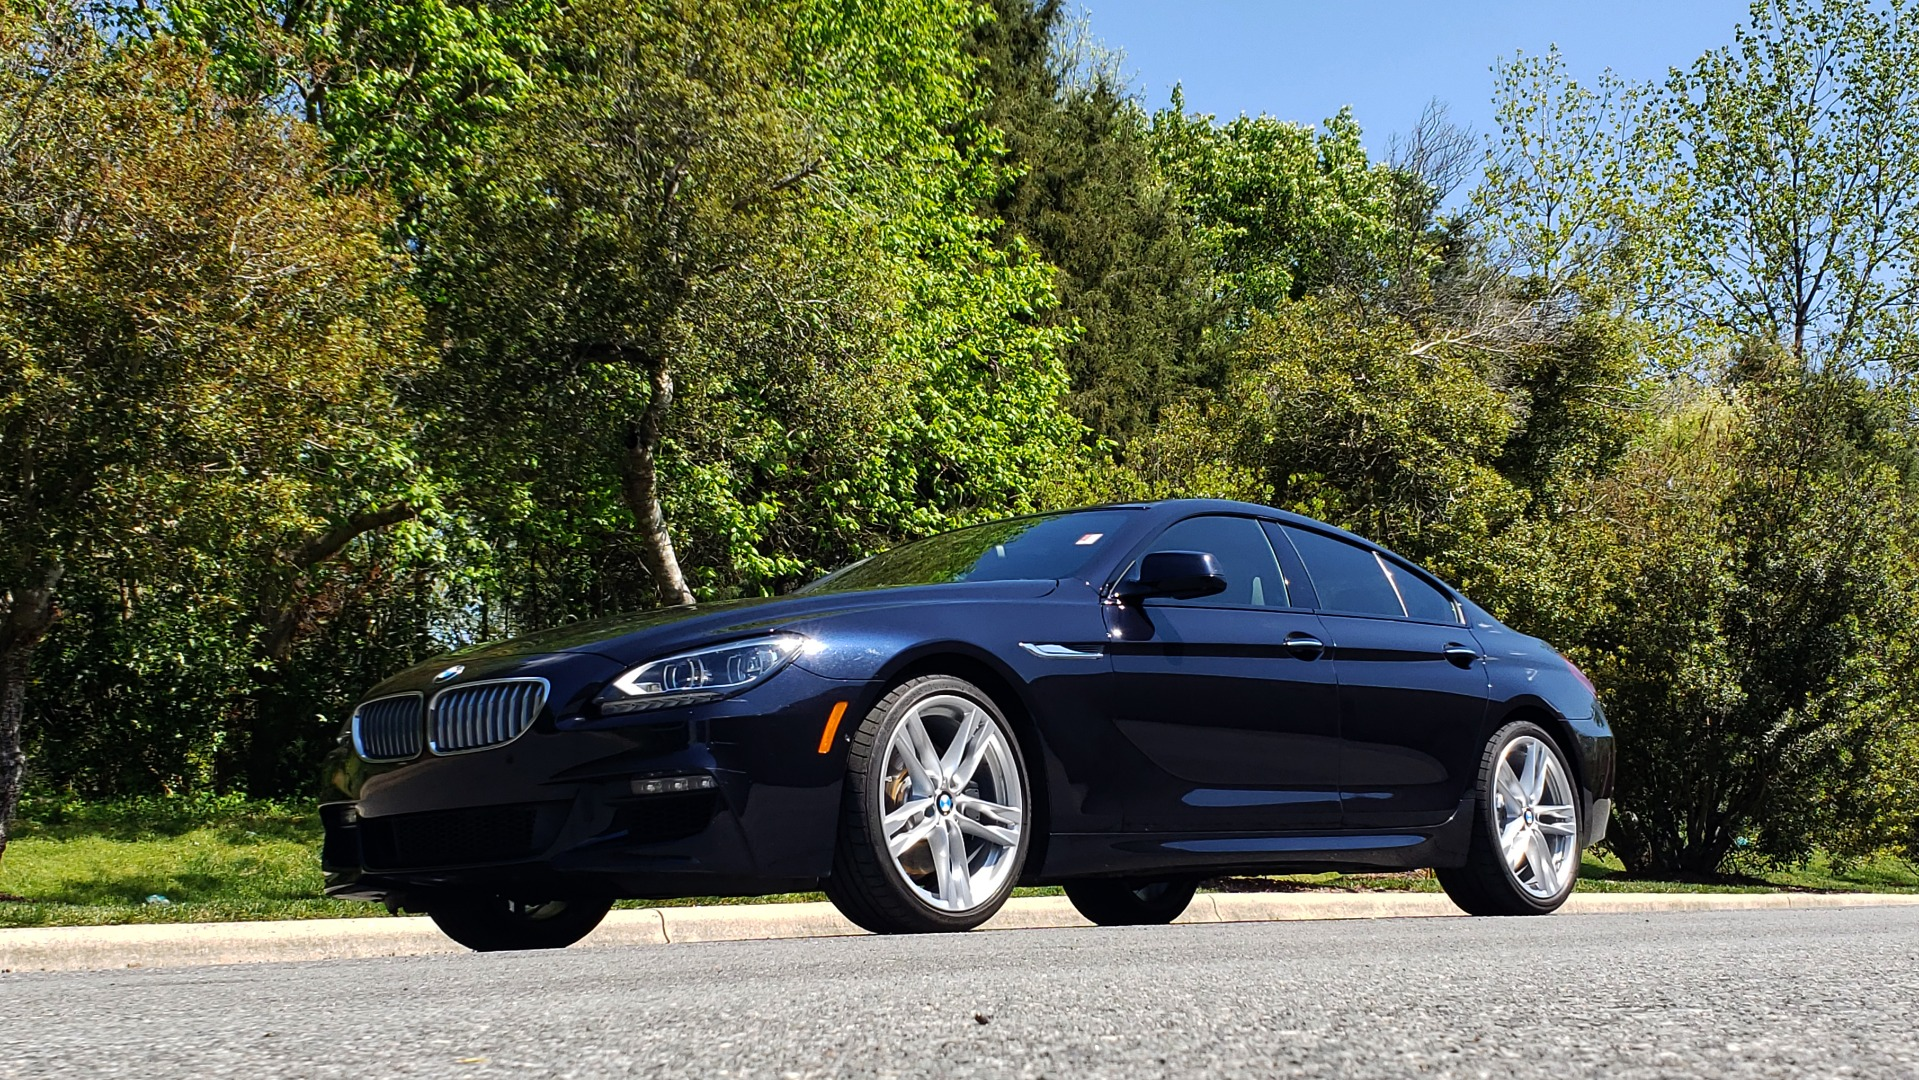 Used 2015 BMW 6 SERIES 650I GRANCOUPE M-SPORT / EXEC / DRVR ASST PLUS / LIGHTING for sale Sold at Formula Imports in Charlotte NC 28227 2